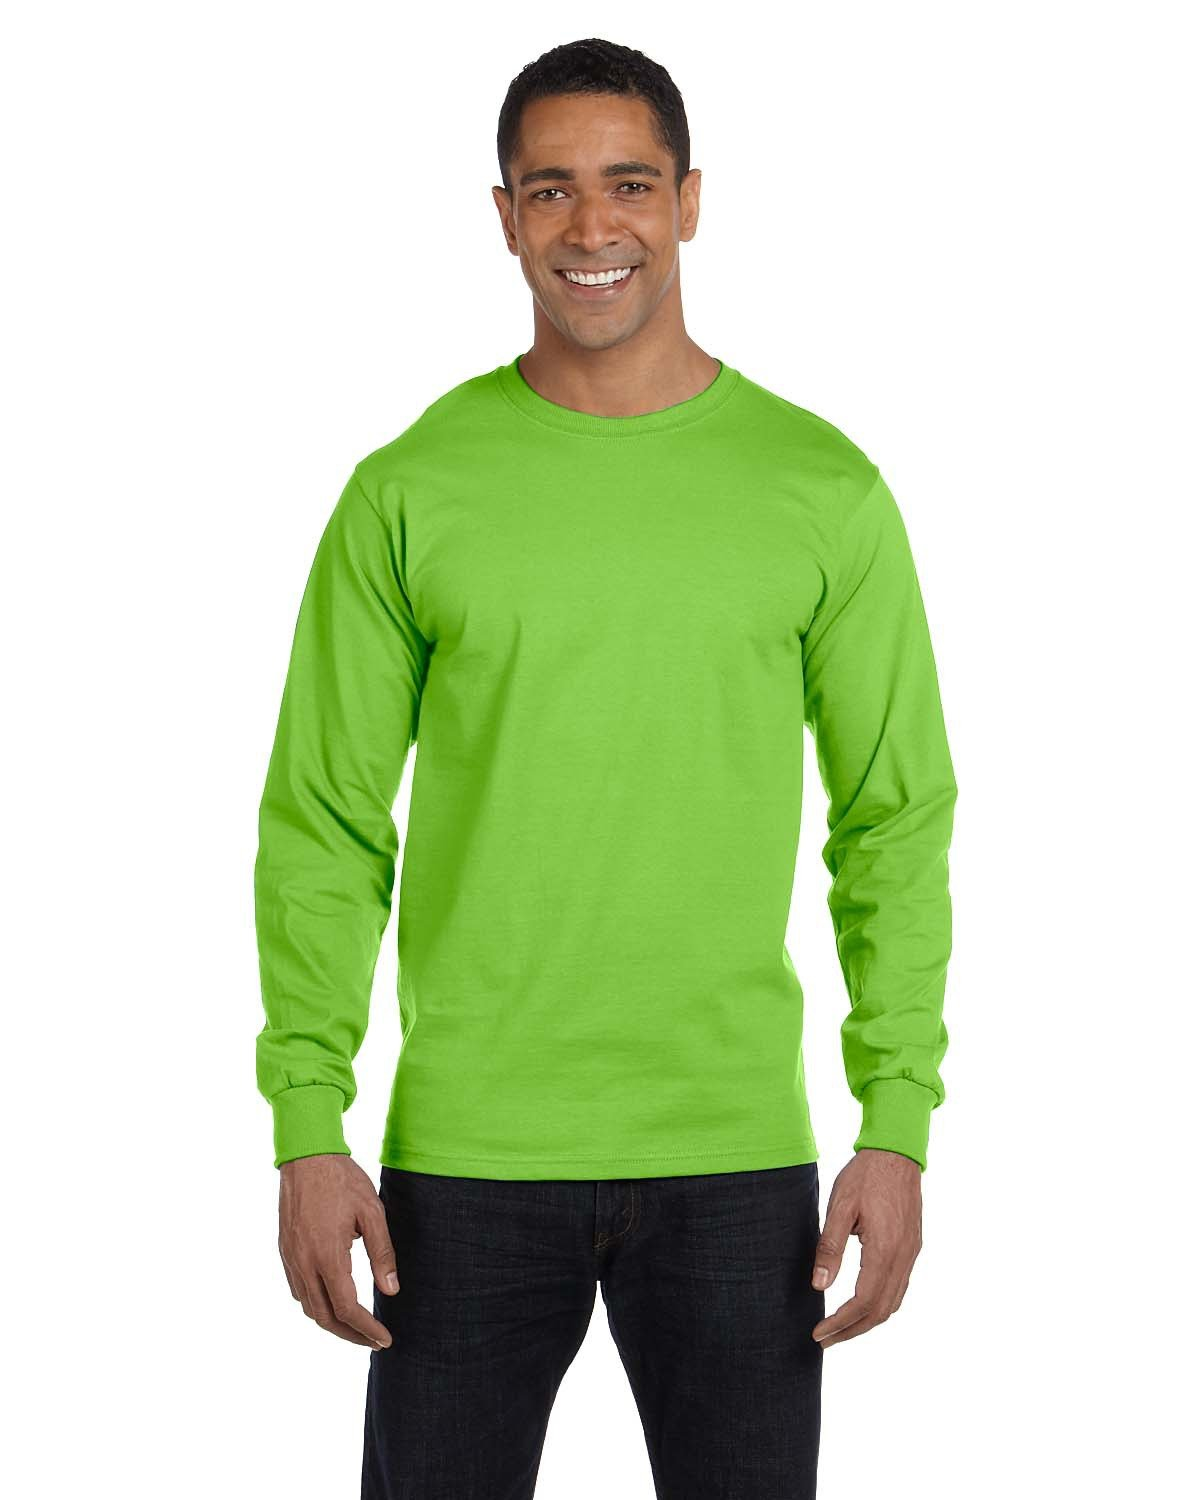 Hanes Adult Long-Sleeve Beefy-T® LIME